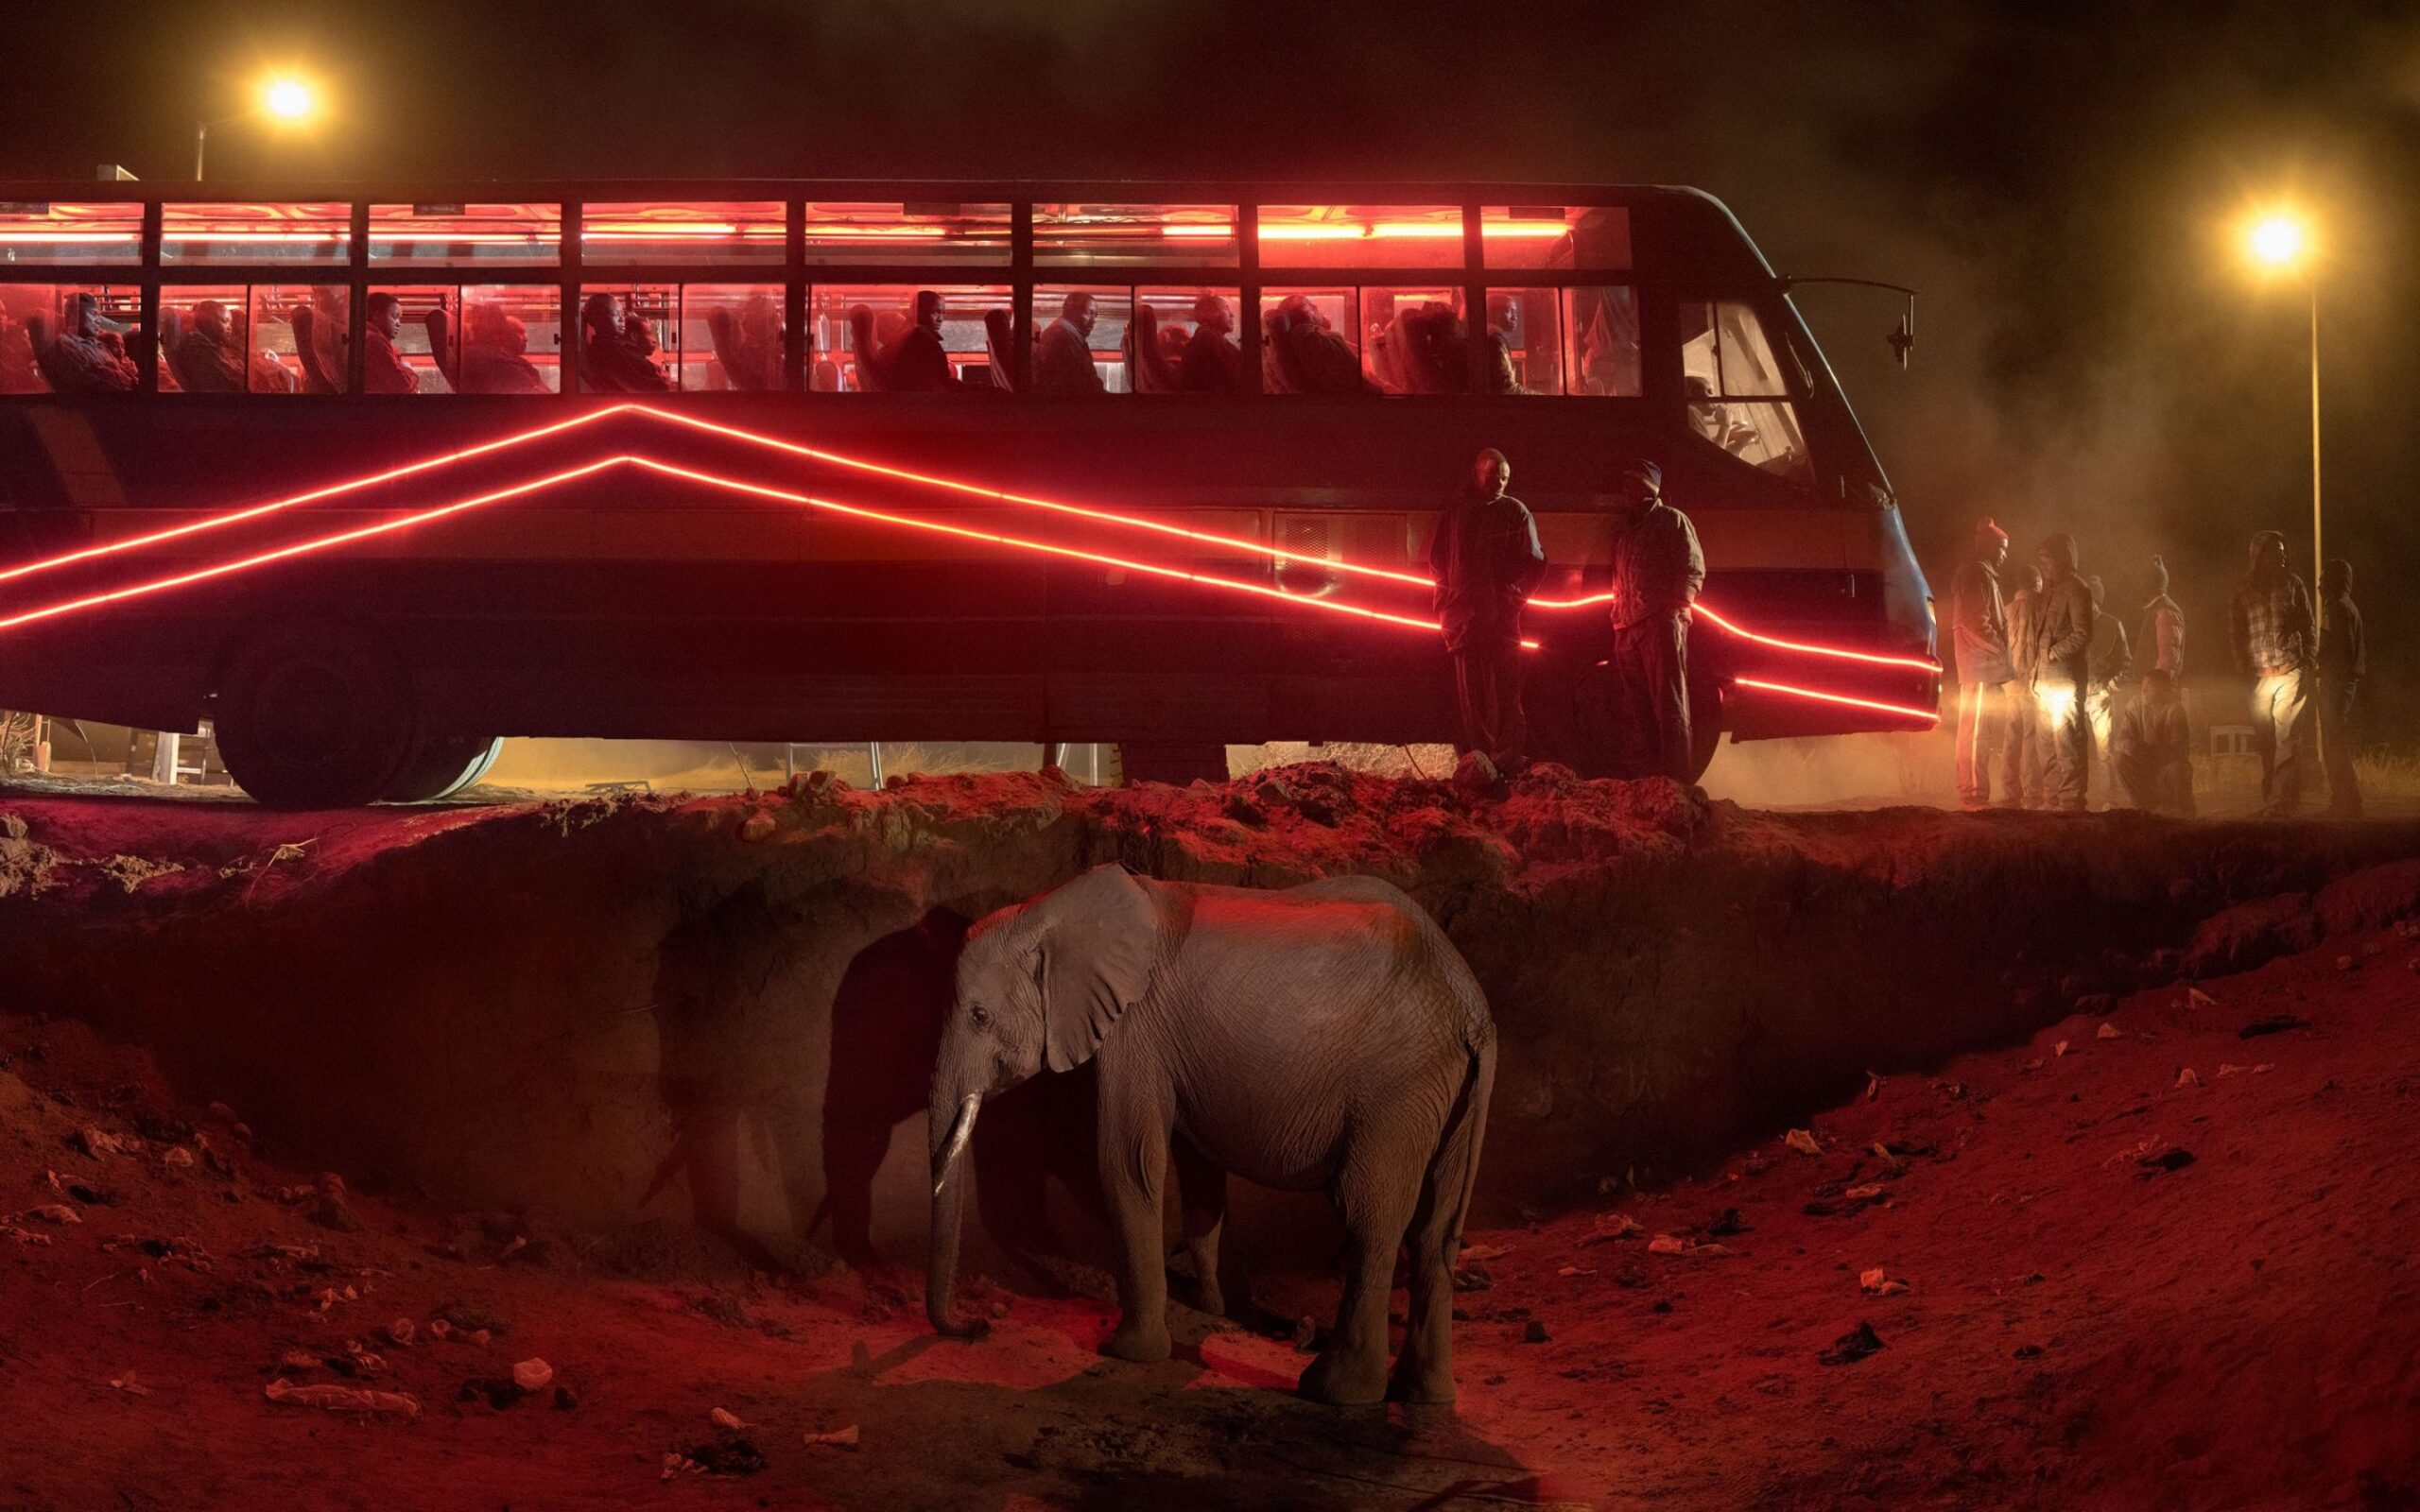 Nick Brandt BUS-STATION-WITH-ELEPHANT-&-RED-BUS